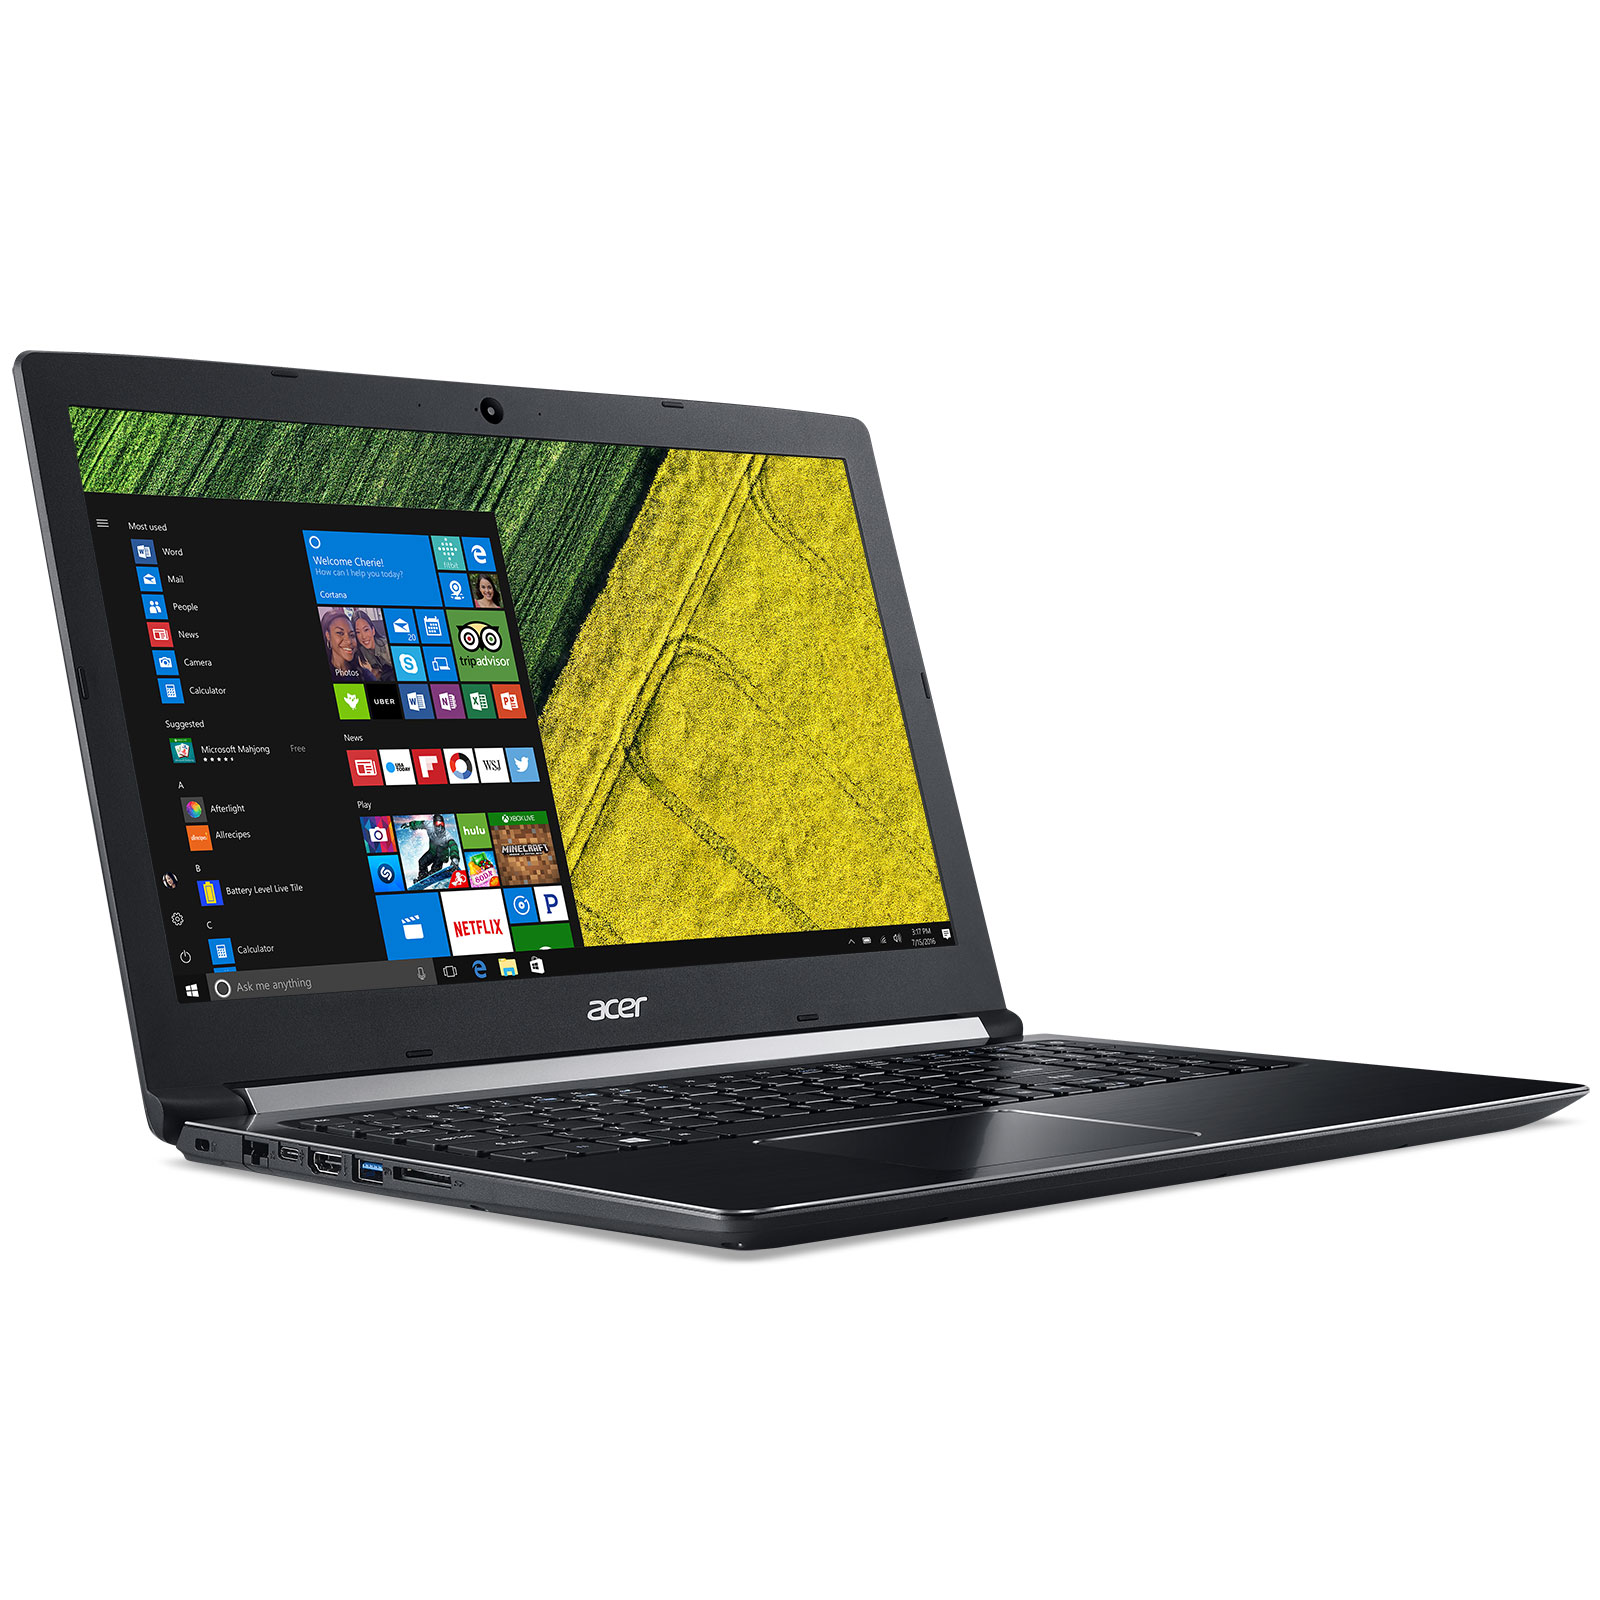 "PC portable Acer Aspire 5 A515-51-382L Noir Intel Core i3-6006U 4 Go 1 To 15.6"" LED Full HD Wi-Fi AC/Bluetooth Webcam Windows 10 Famille 64 bits"